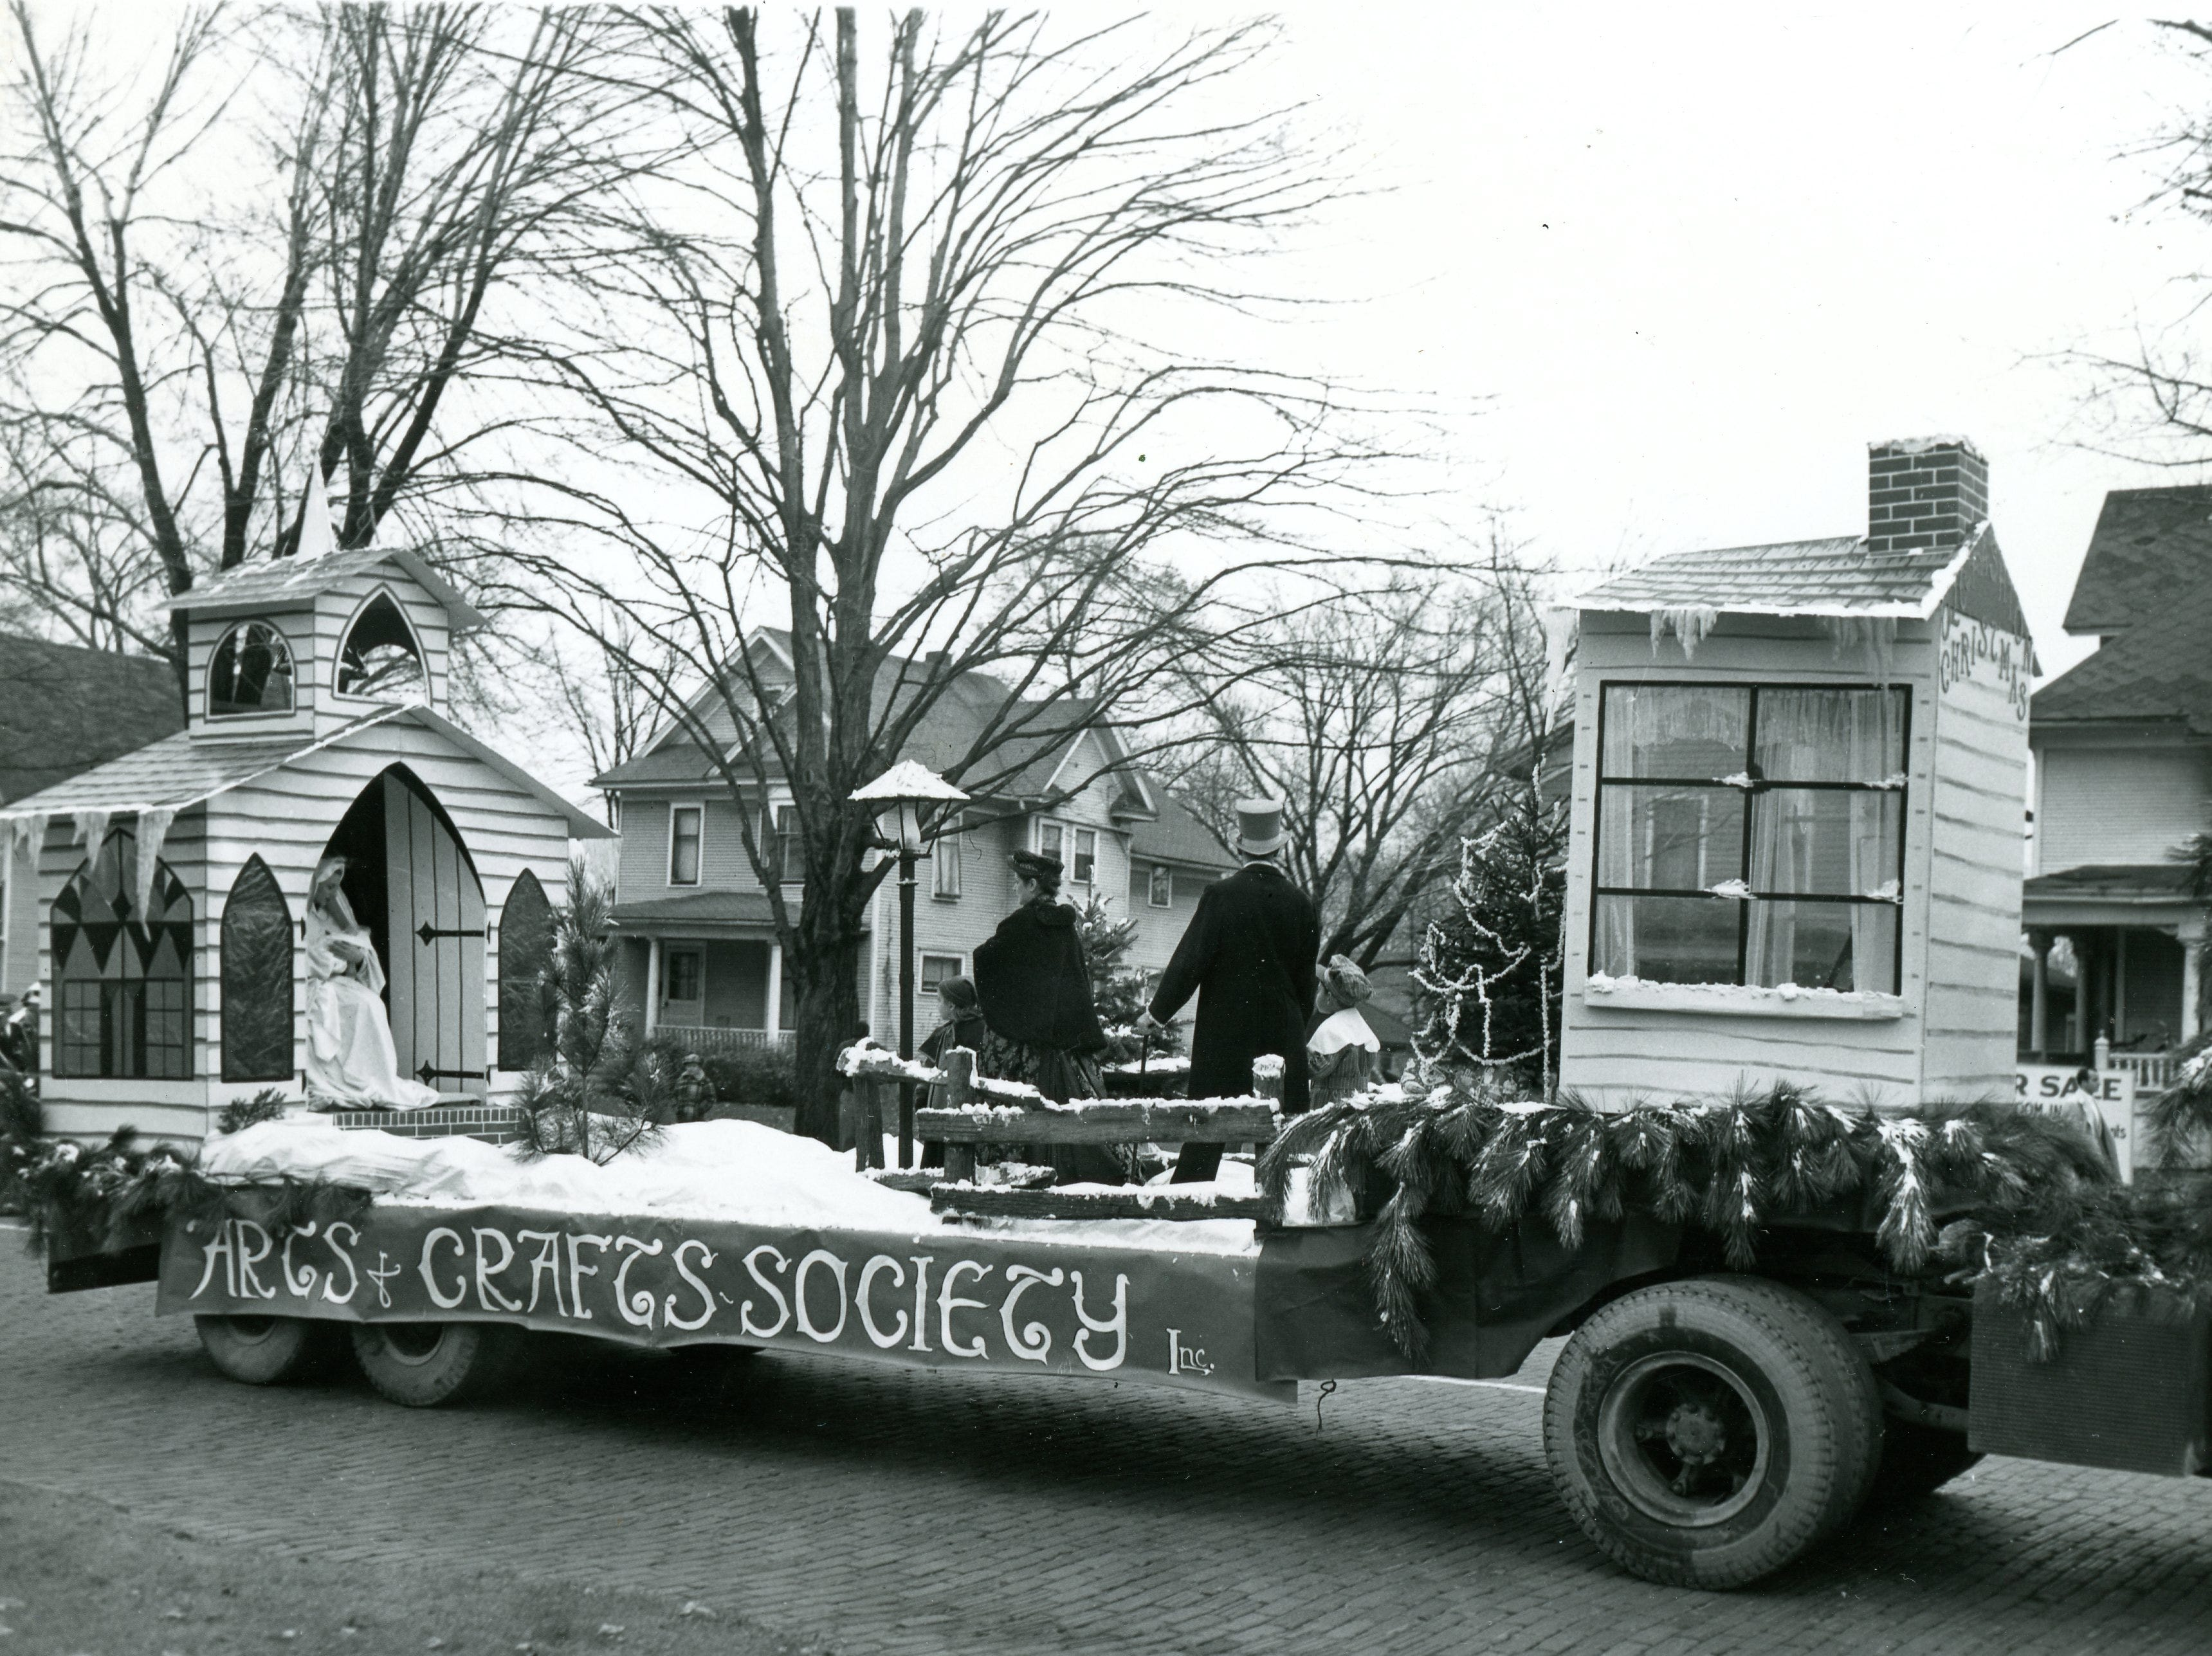 A float in Lansing's Christmas parade in the 1950s.